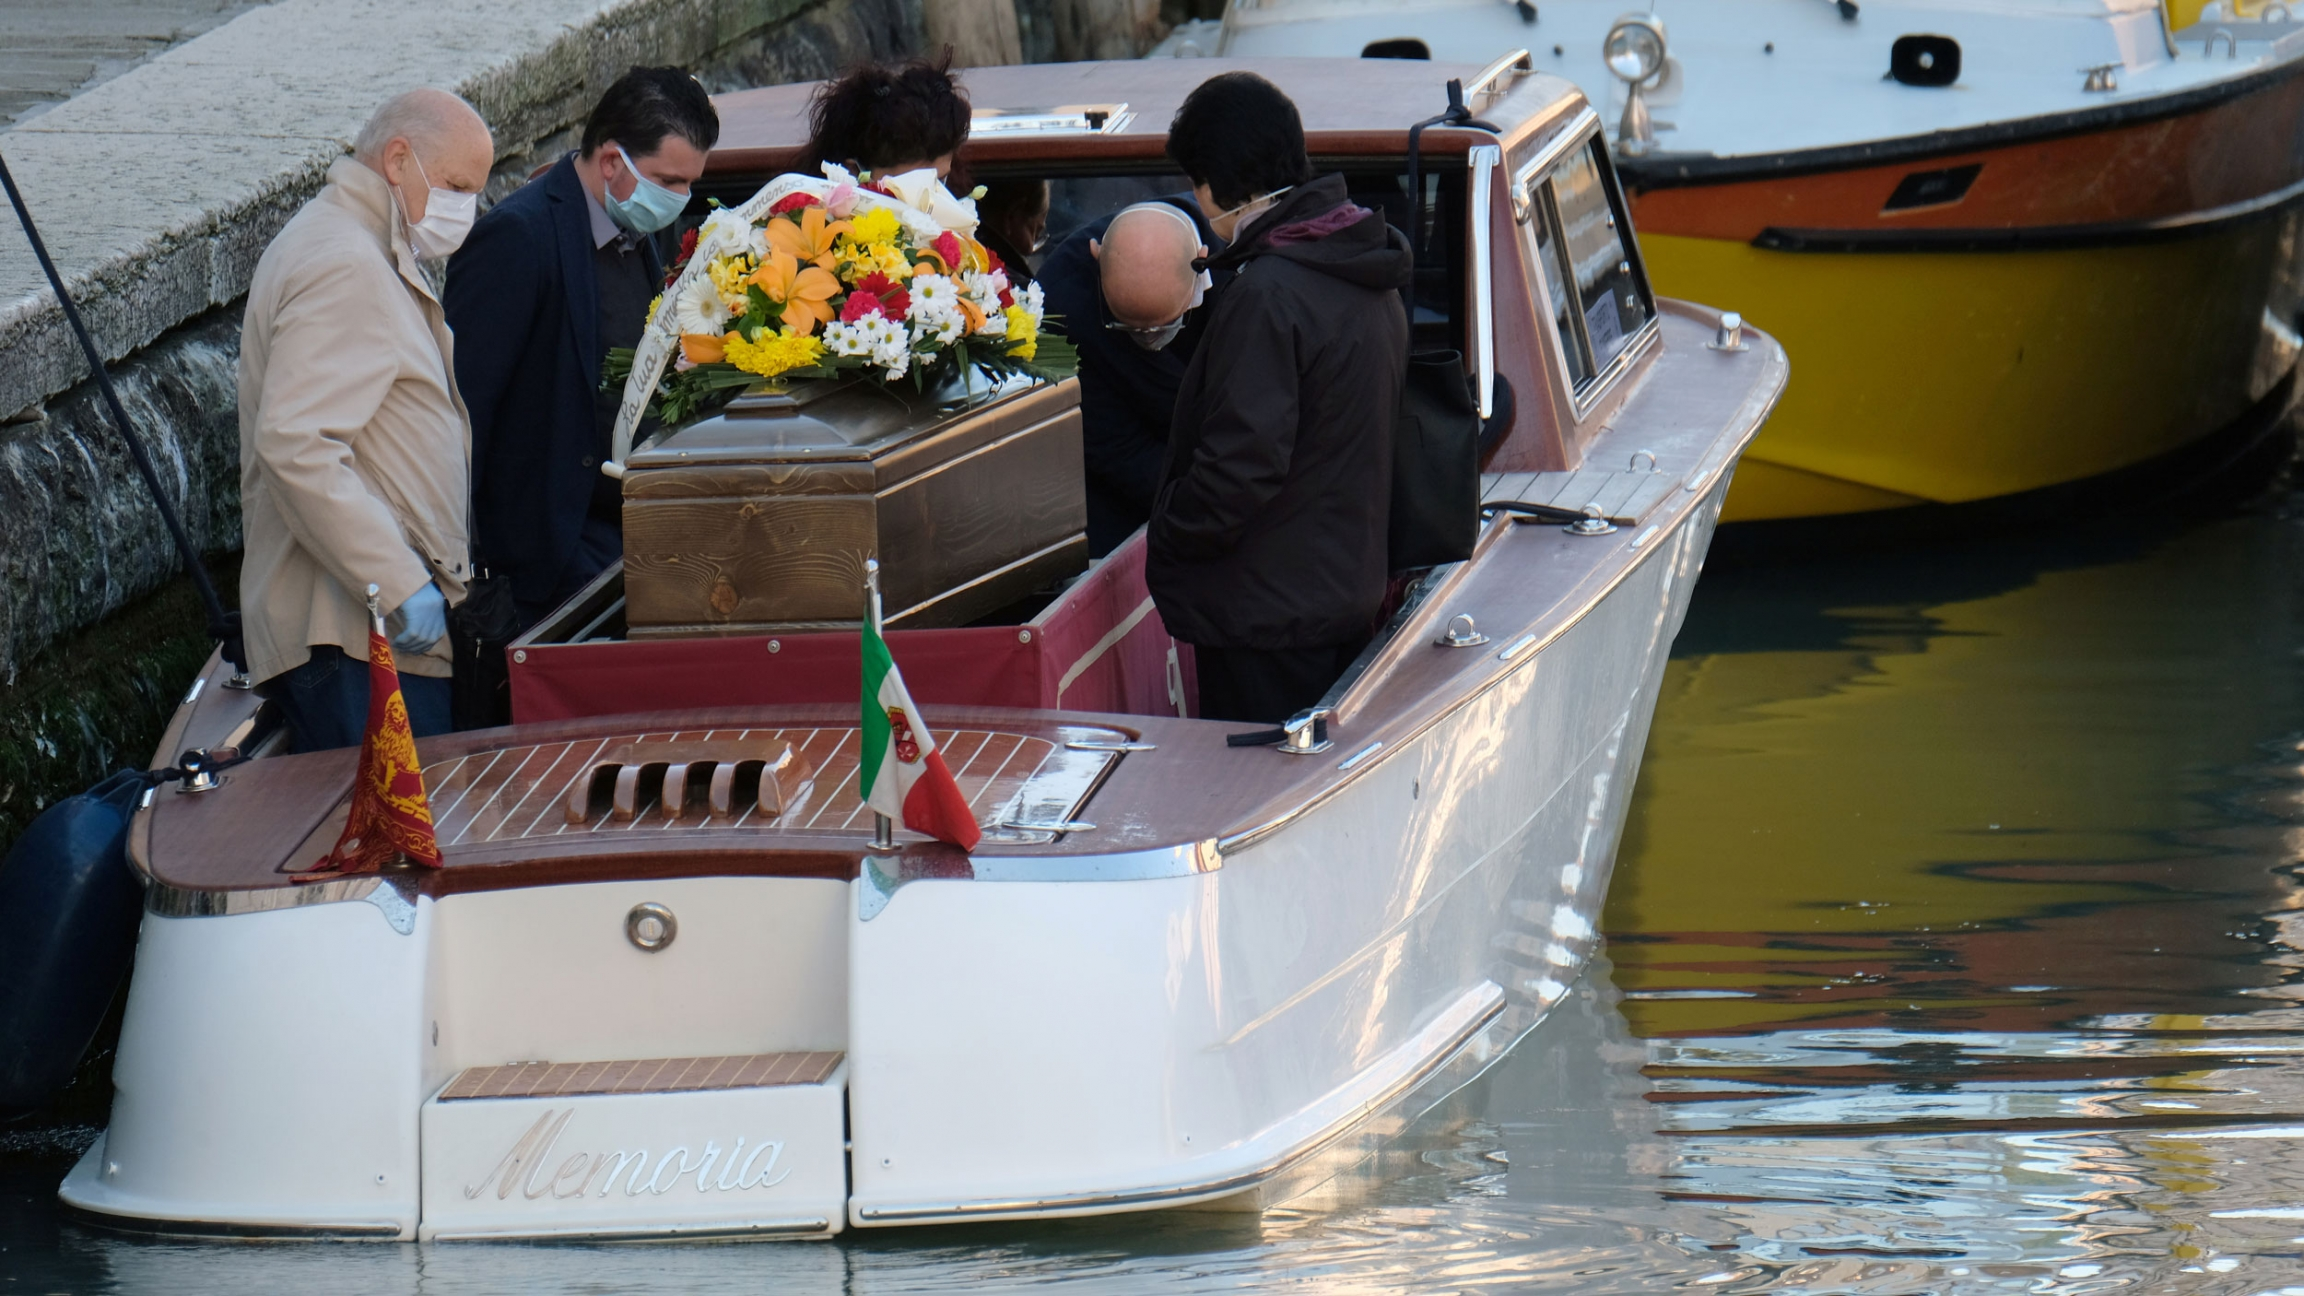 People gather around a coffin on a boat